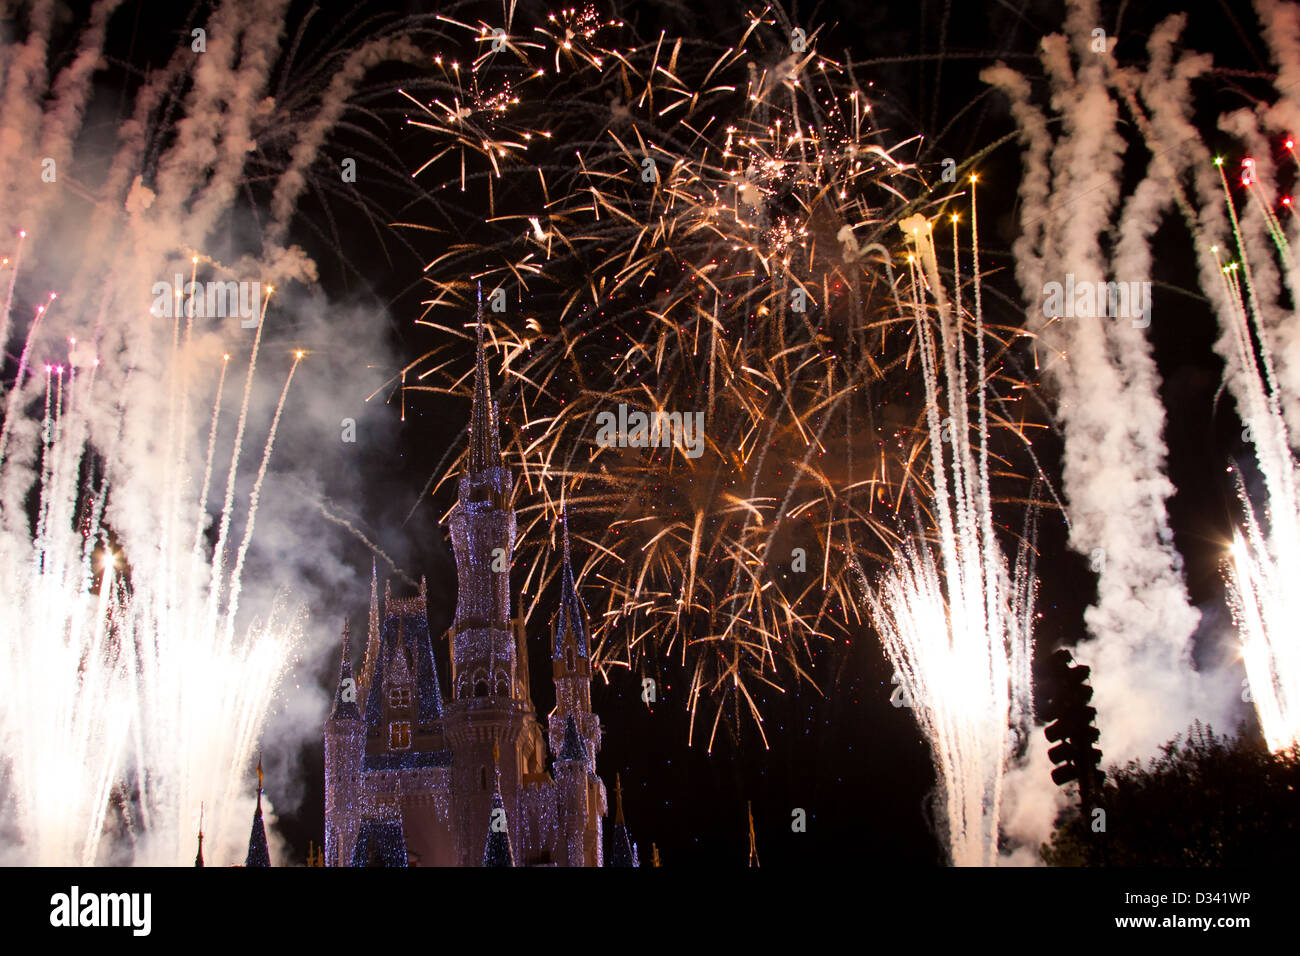 Disney World Castle At Night With Lights And Fireworks Stock Photo